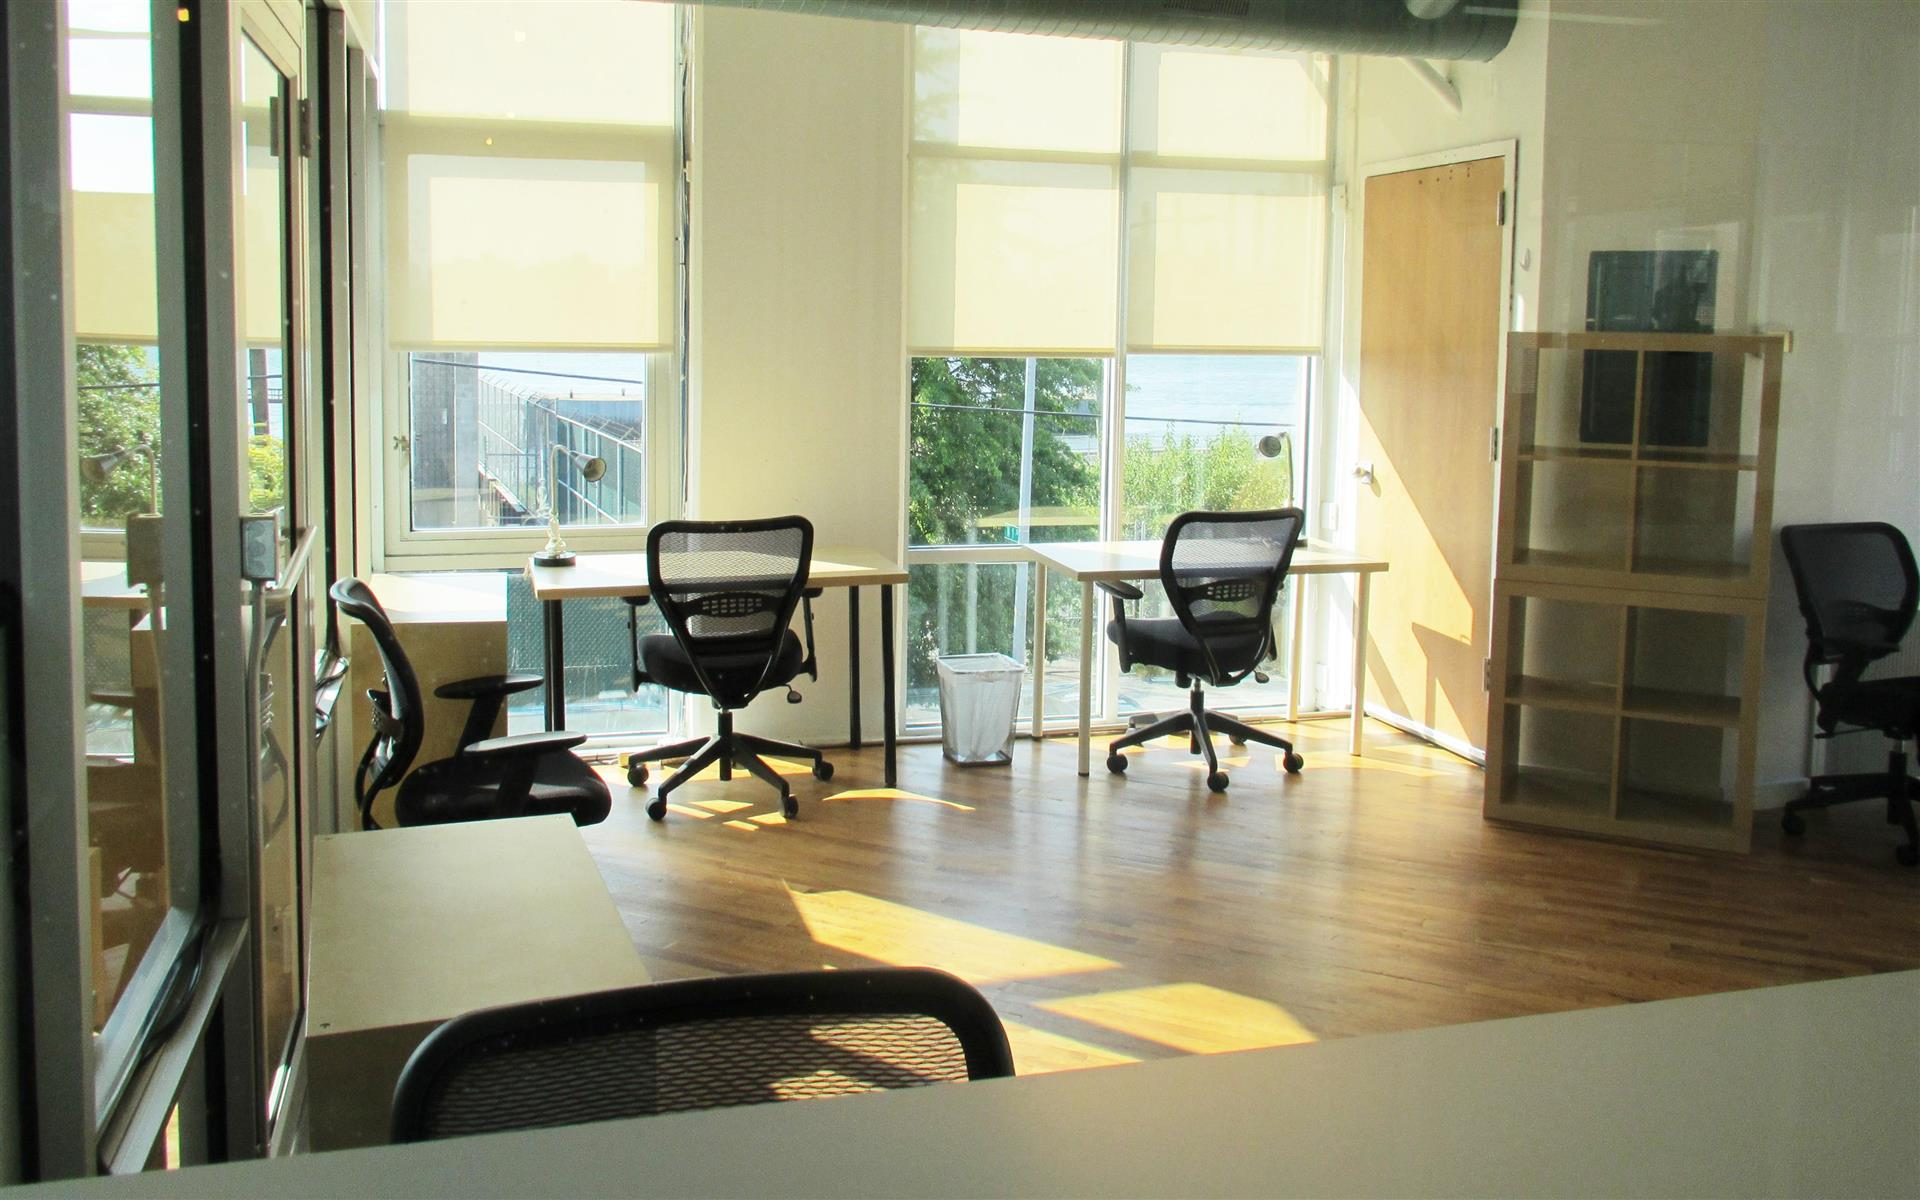 Green Desk - 240 Kent Ave - All Inclusive 6 Desk Office